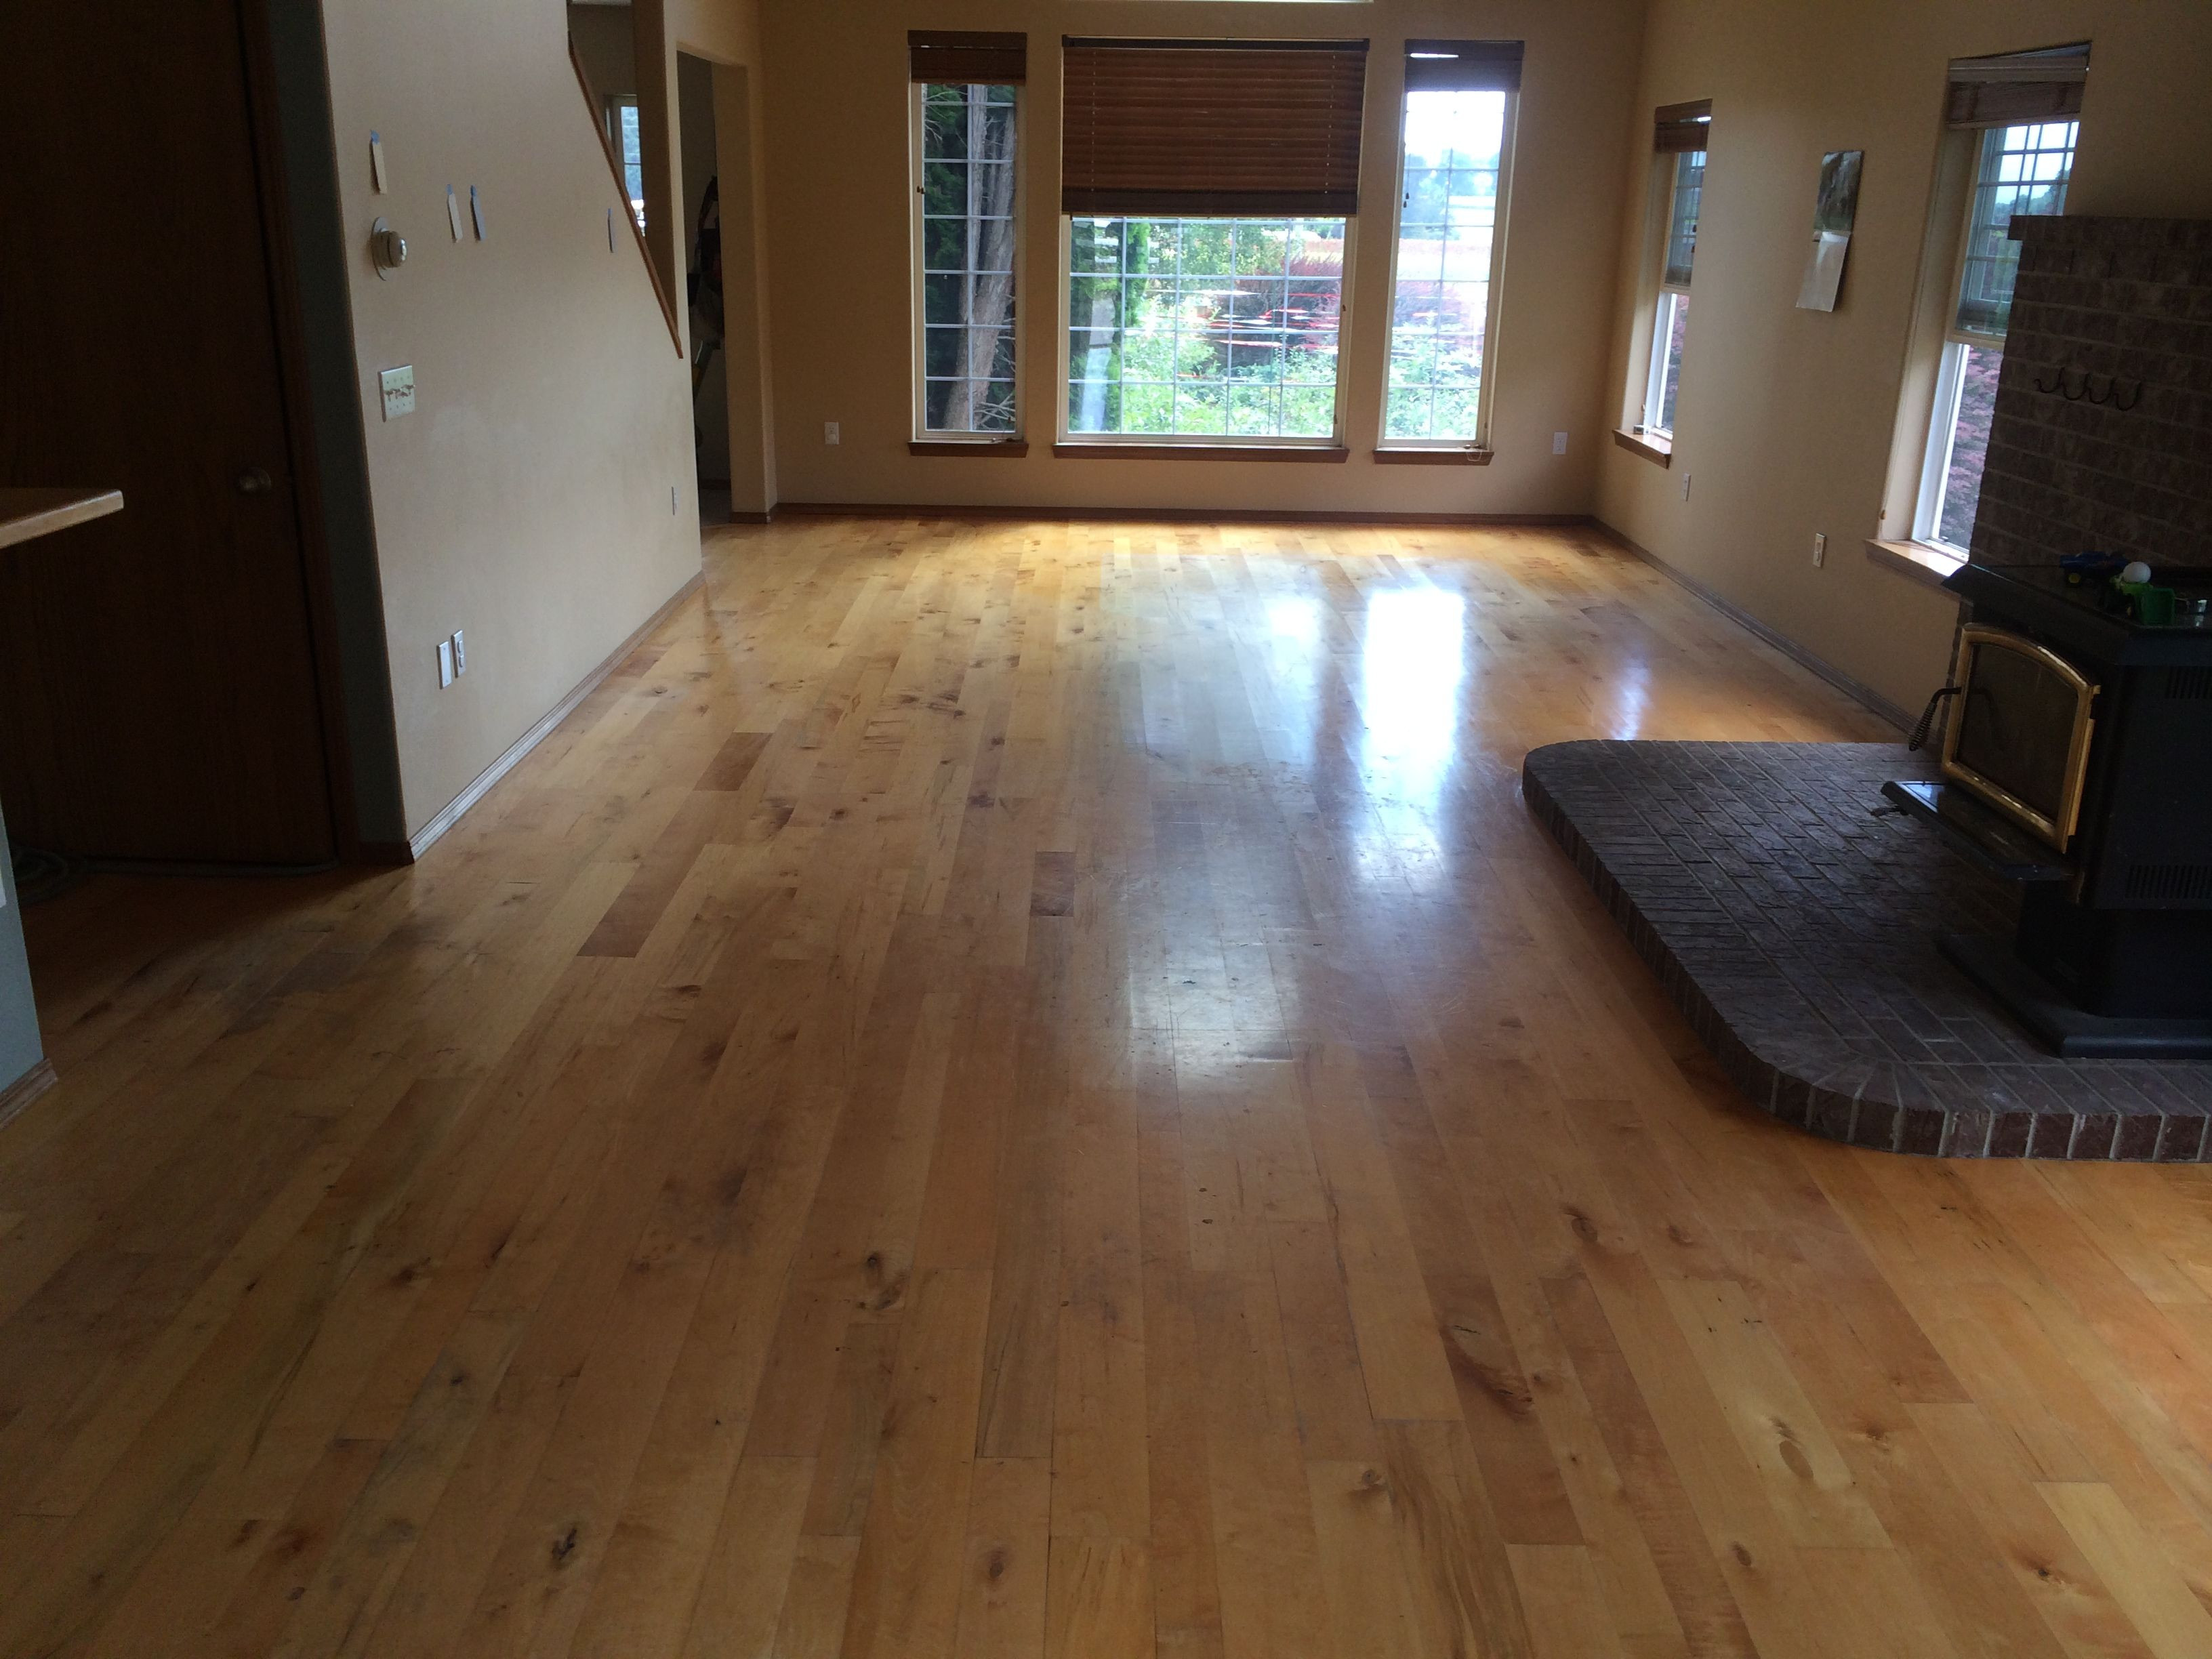 hardwood floor refinishing utica ny of how much to refinish wood floors great methods to use for with how much to refinish wood floors refinish done in portland oregon floor is made from maple